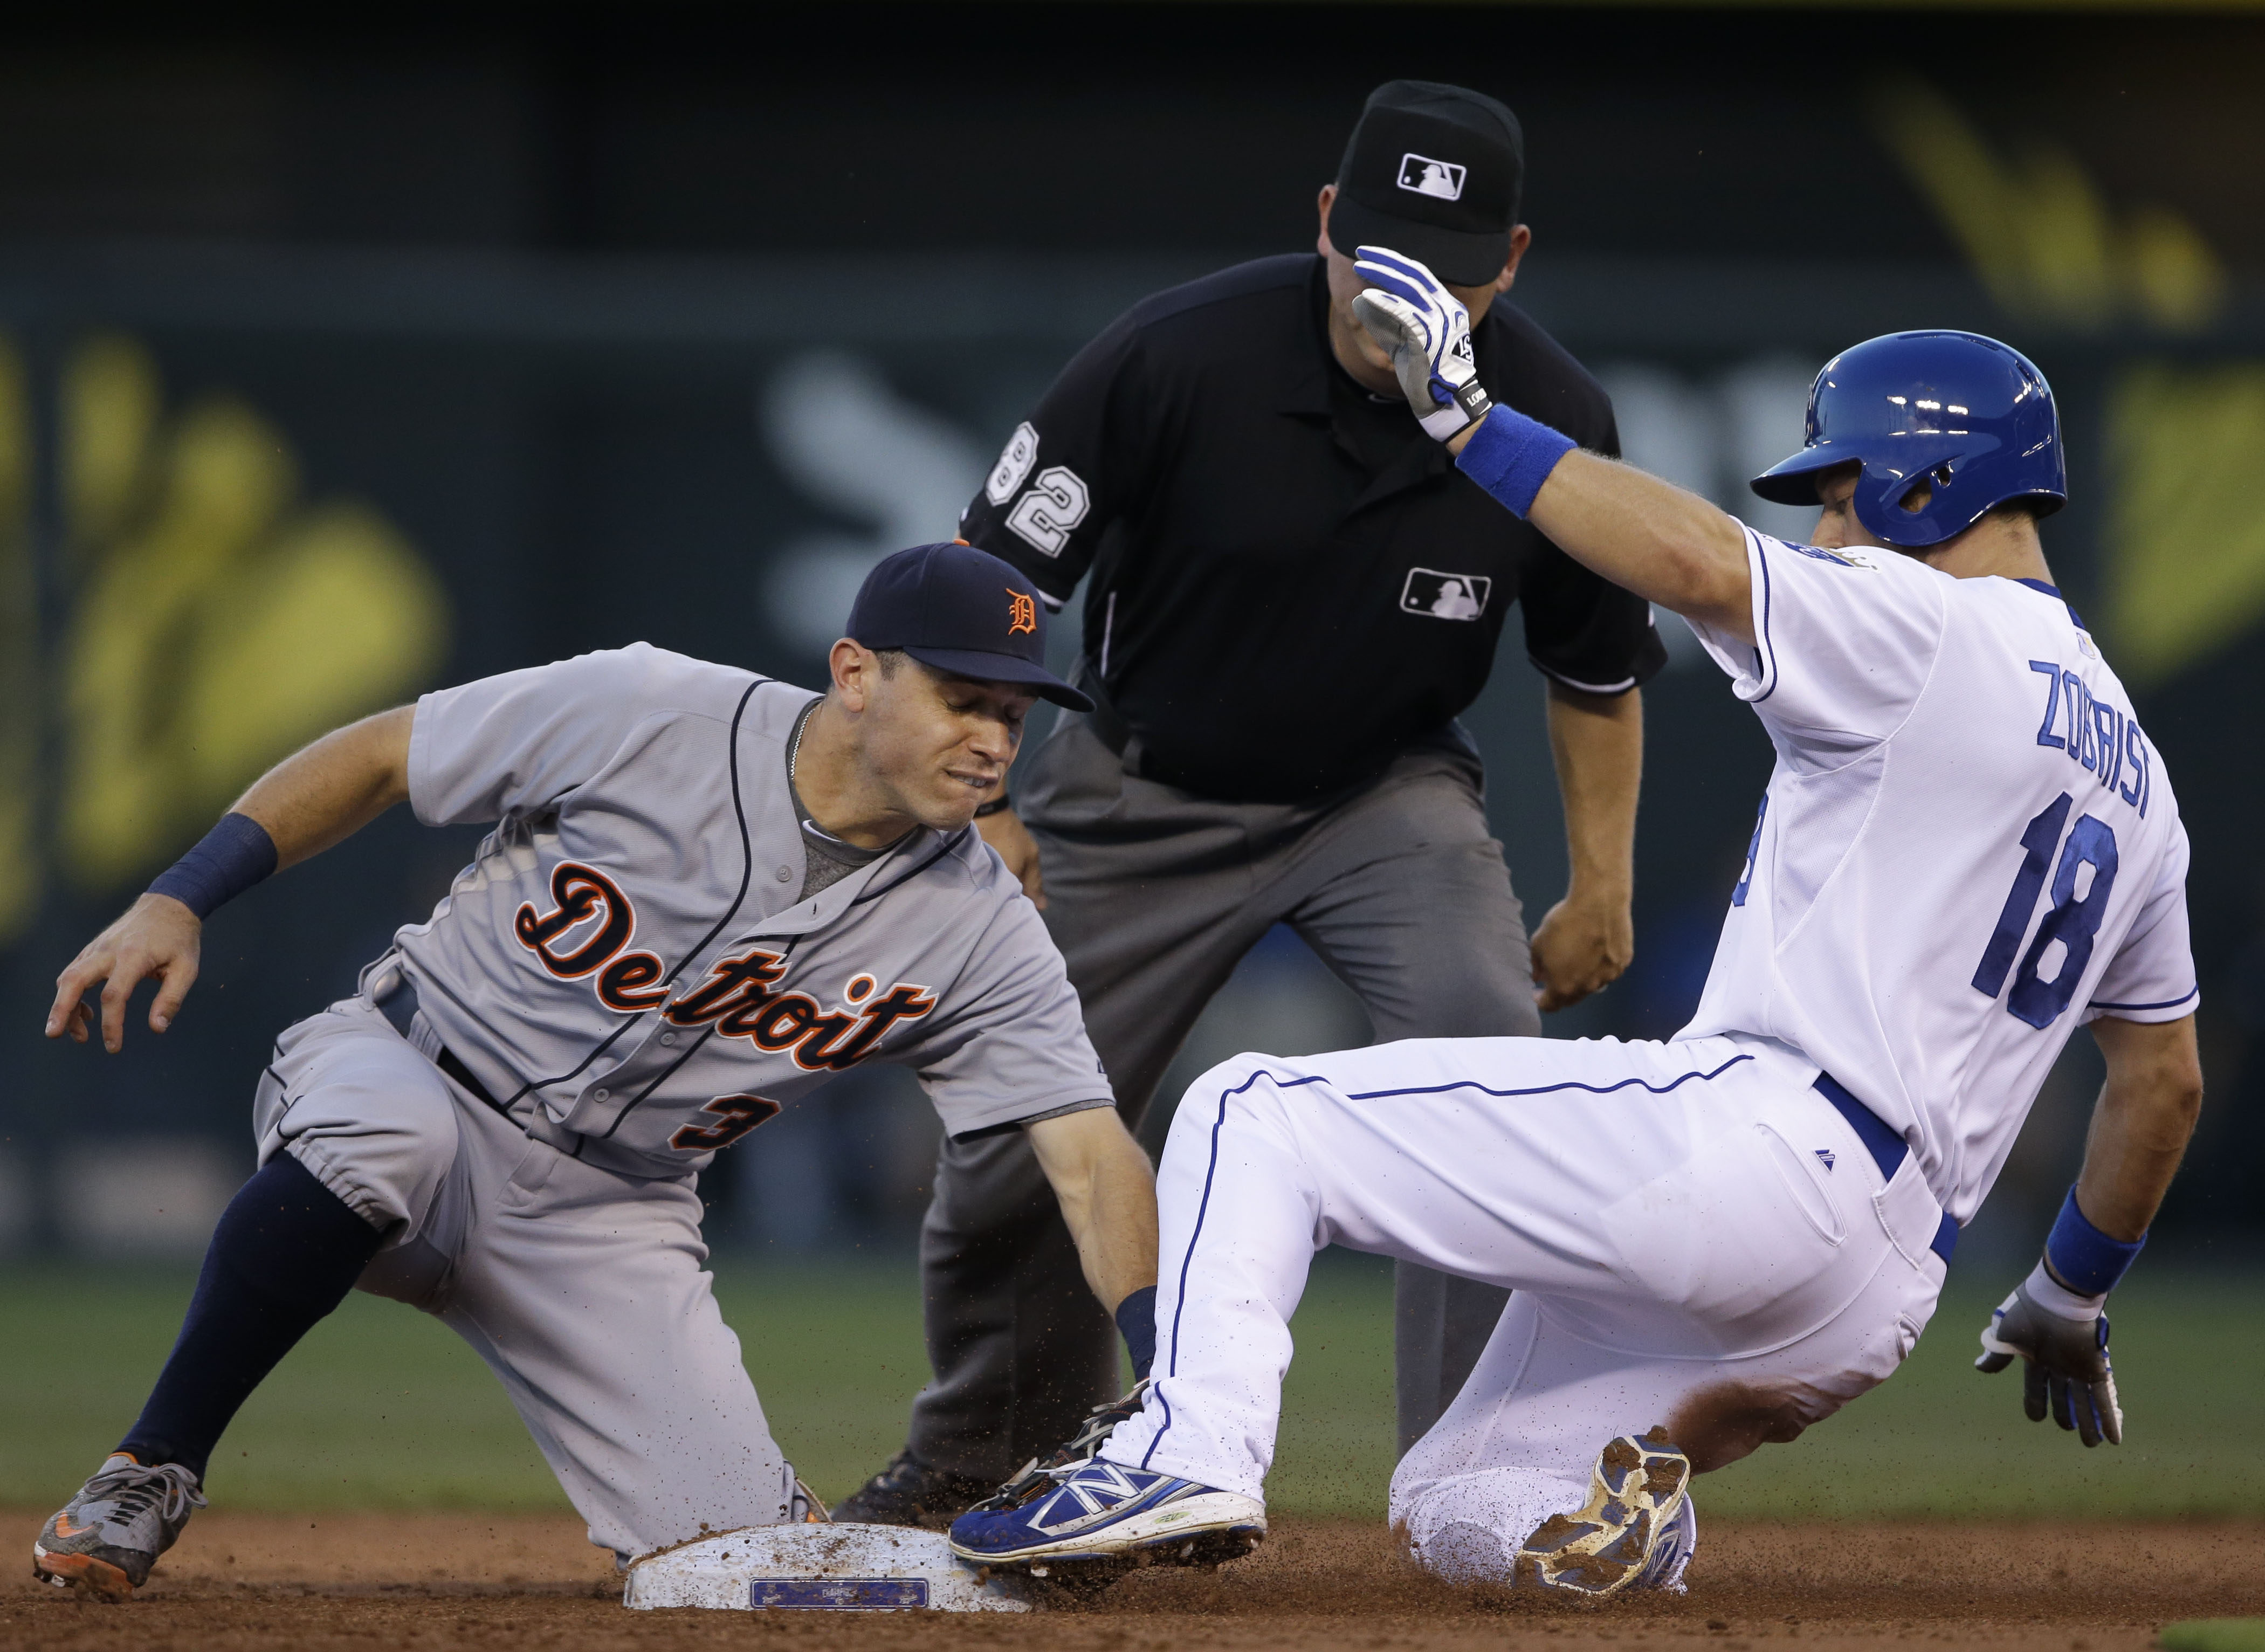 Detroit Tigers second baseman Ian Kinsler, left, tags out Kansas City Royals' Ben Zobrist, right, during the third inning of a baseball game at Kauffman Stadium in Kansas City, Mo., Monday, Aug. 10, 2015. (AP Photo/Orlin Wagner)